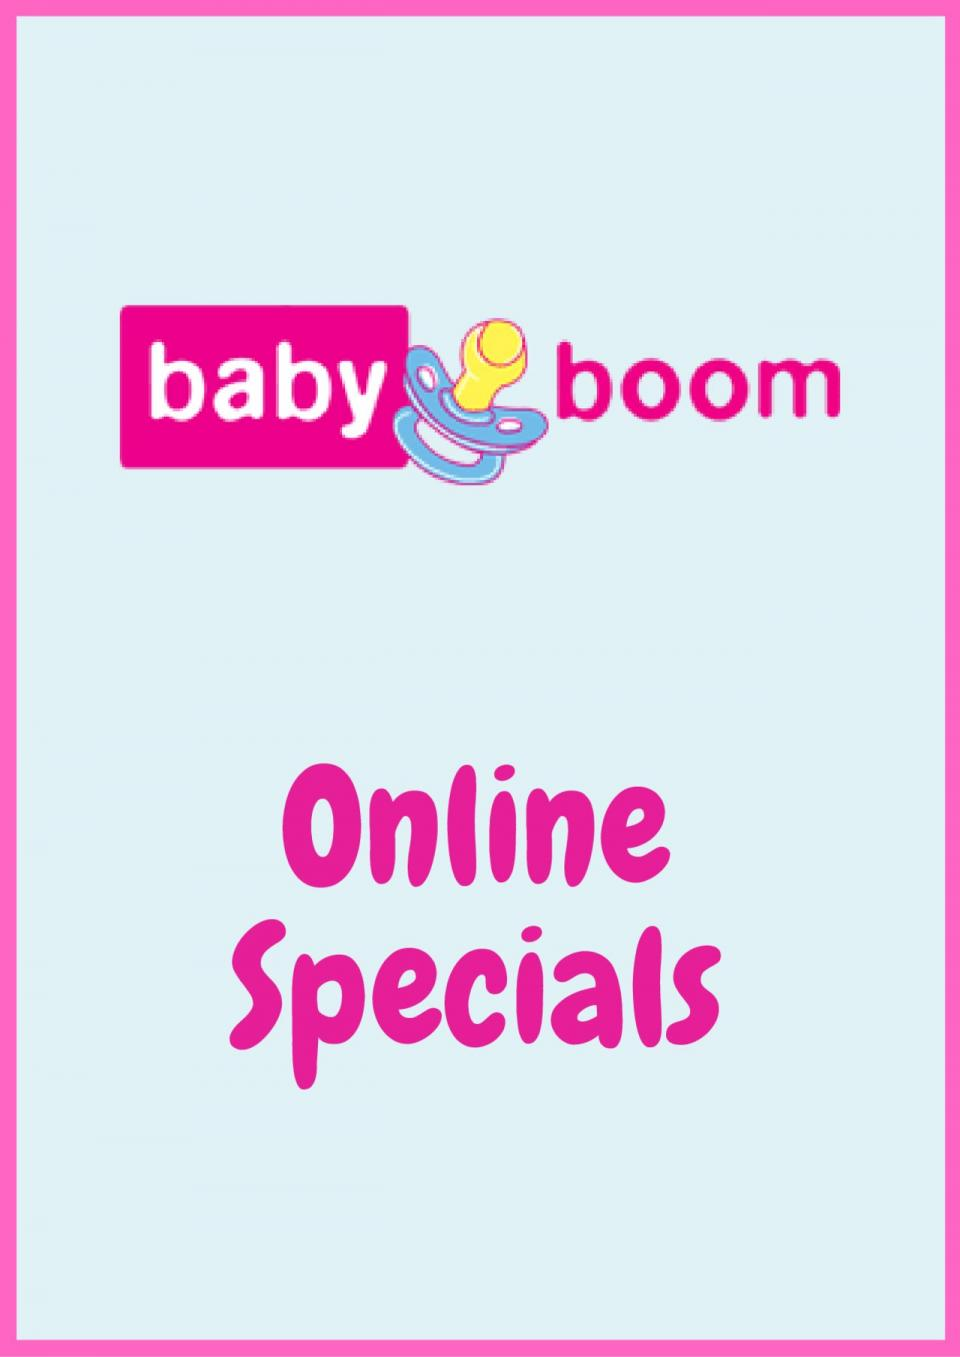 baby boom specials 20 may 2020